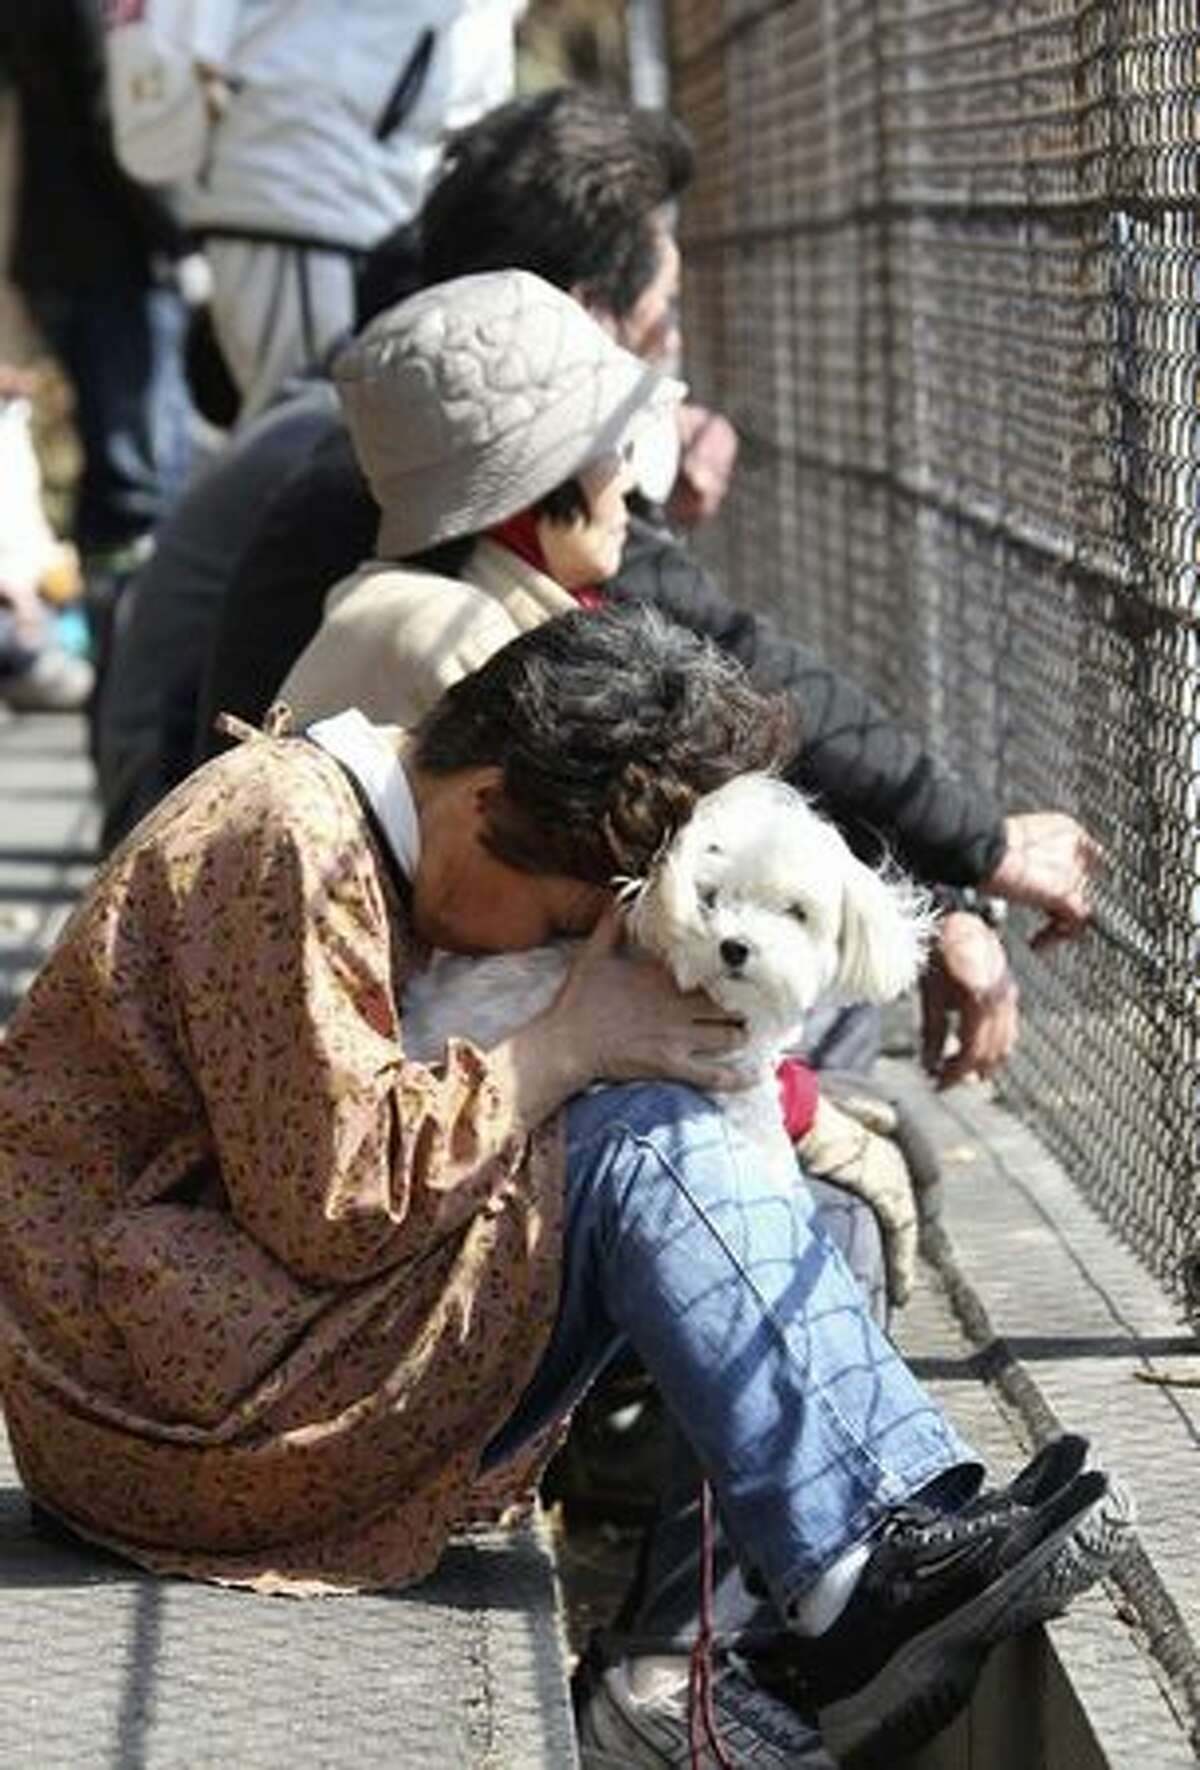 A woman holding her dog reacts after evacuating following a tsunami warning in Kamaishi, Iwate Prefecture, northern Japan, Monday, March 14, 2011, three days after a powerful earthquake-triggered tsunami hit the country's east coast. (AP Photo/The Yomiuri Shimbun, Daisuke Uragami)